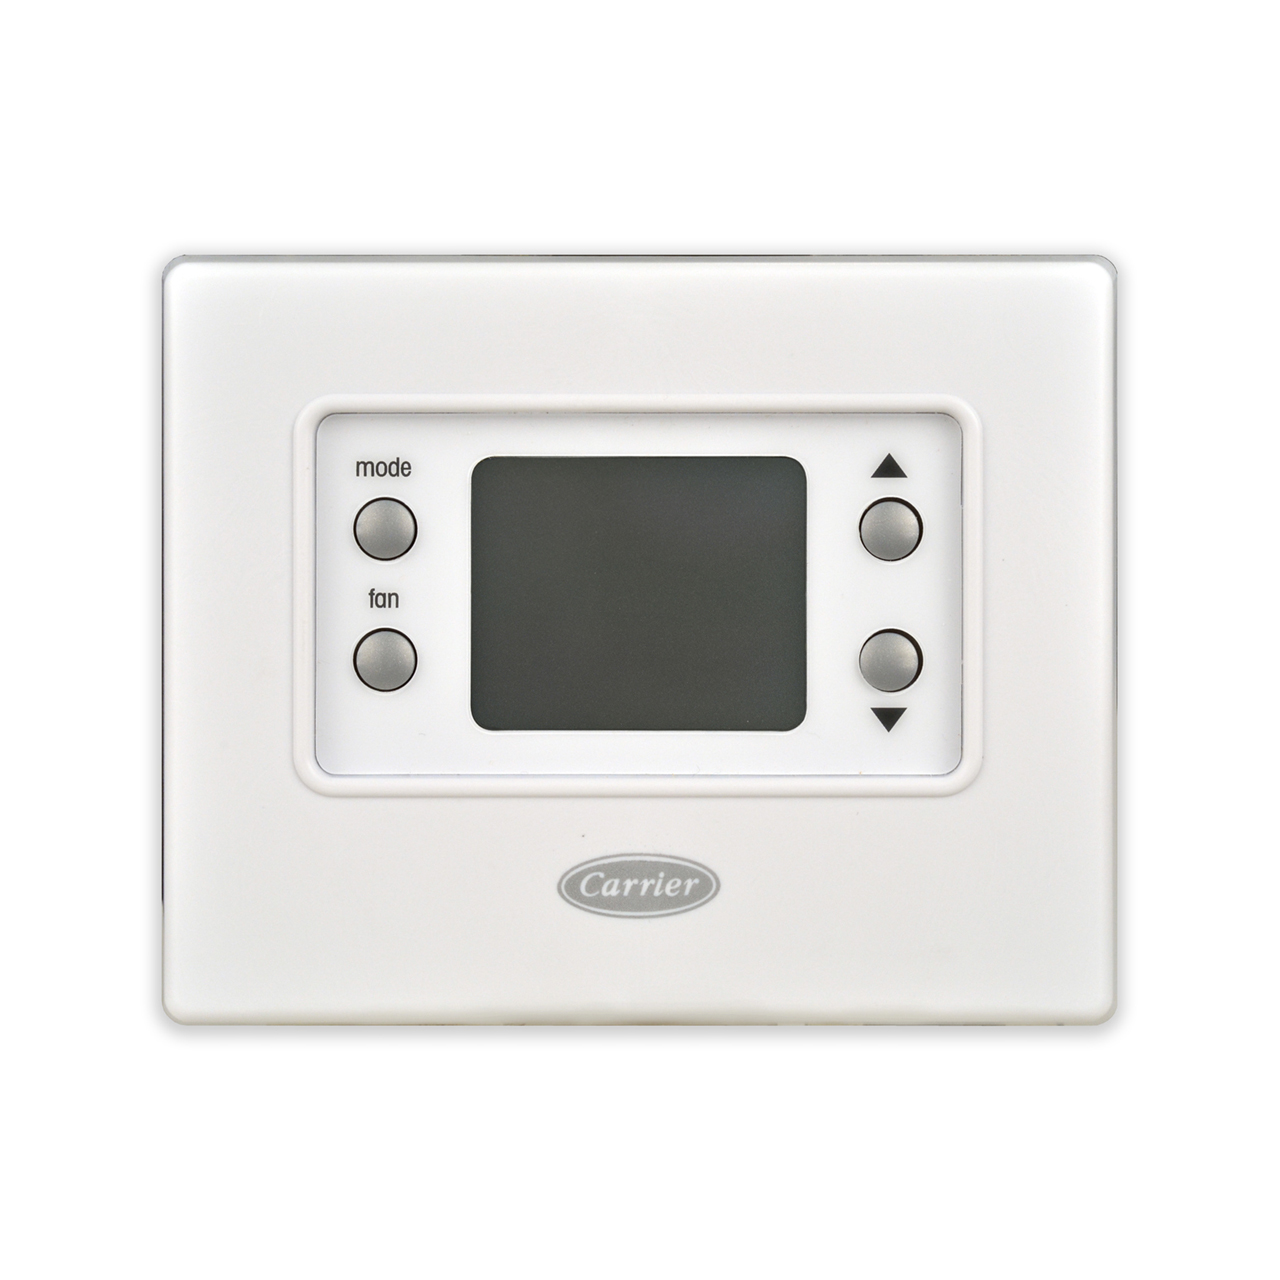 carrier-33CSCNACHP-fc-non-programmable-fan-coil-thermostat